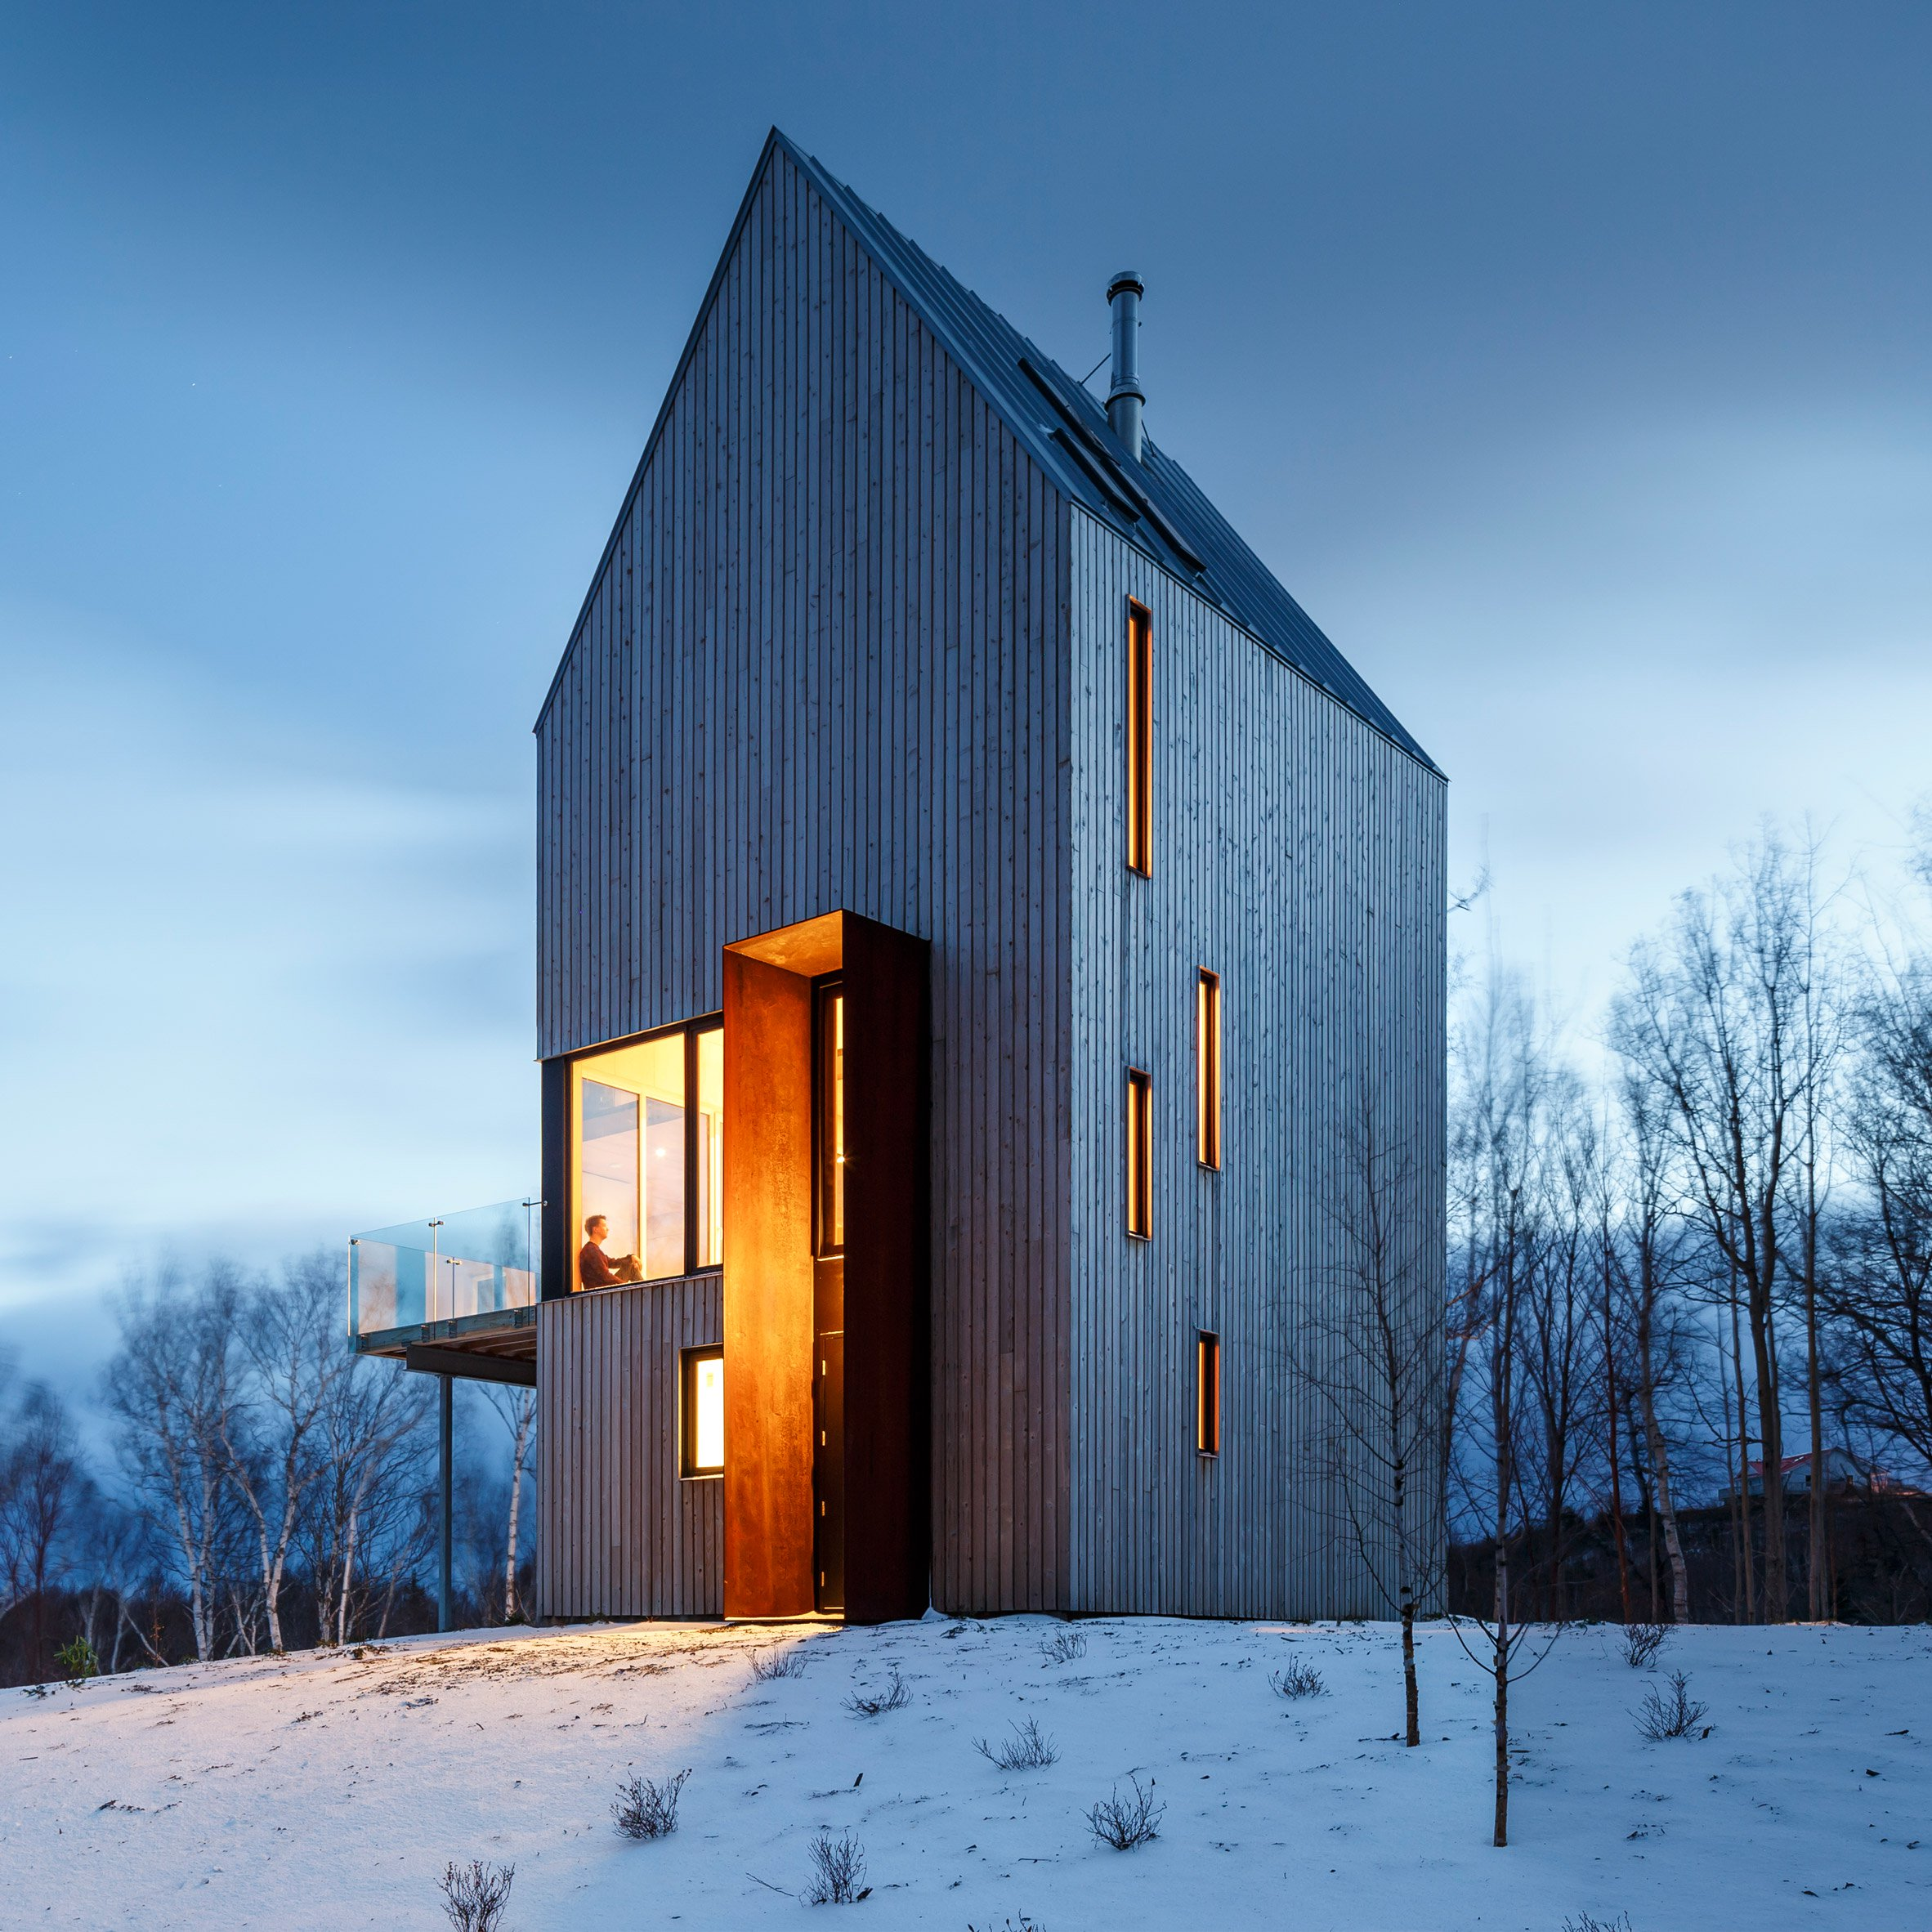 10 of the best cabins in the Canadian woods